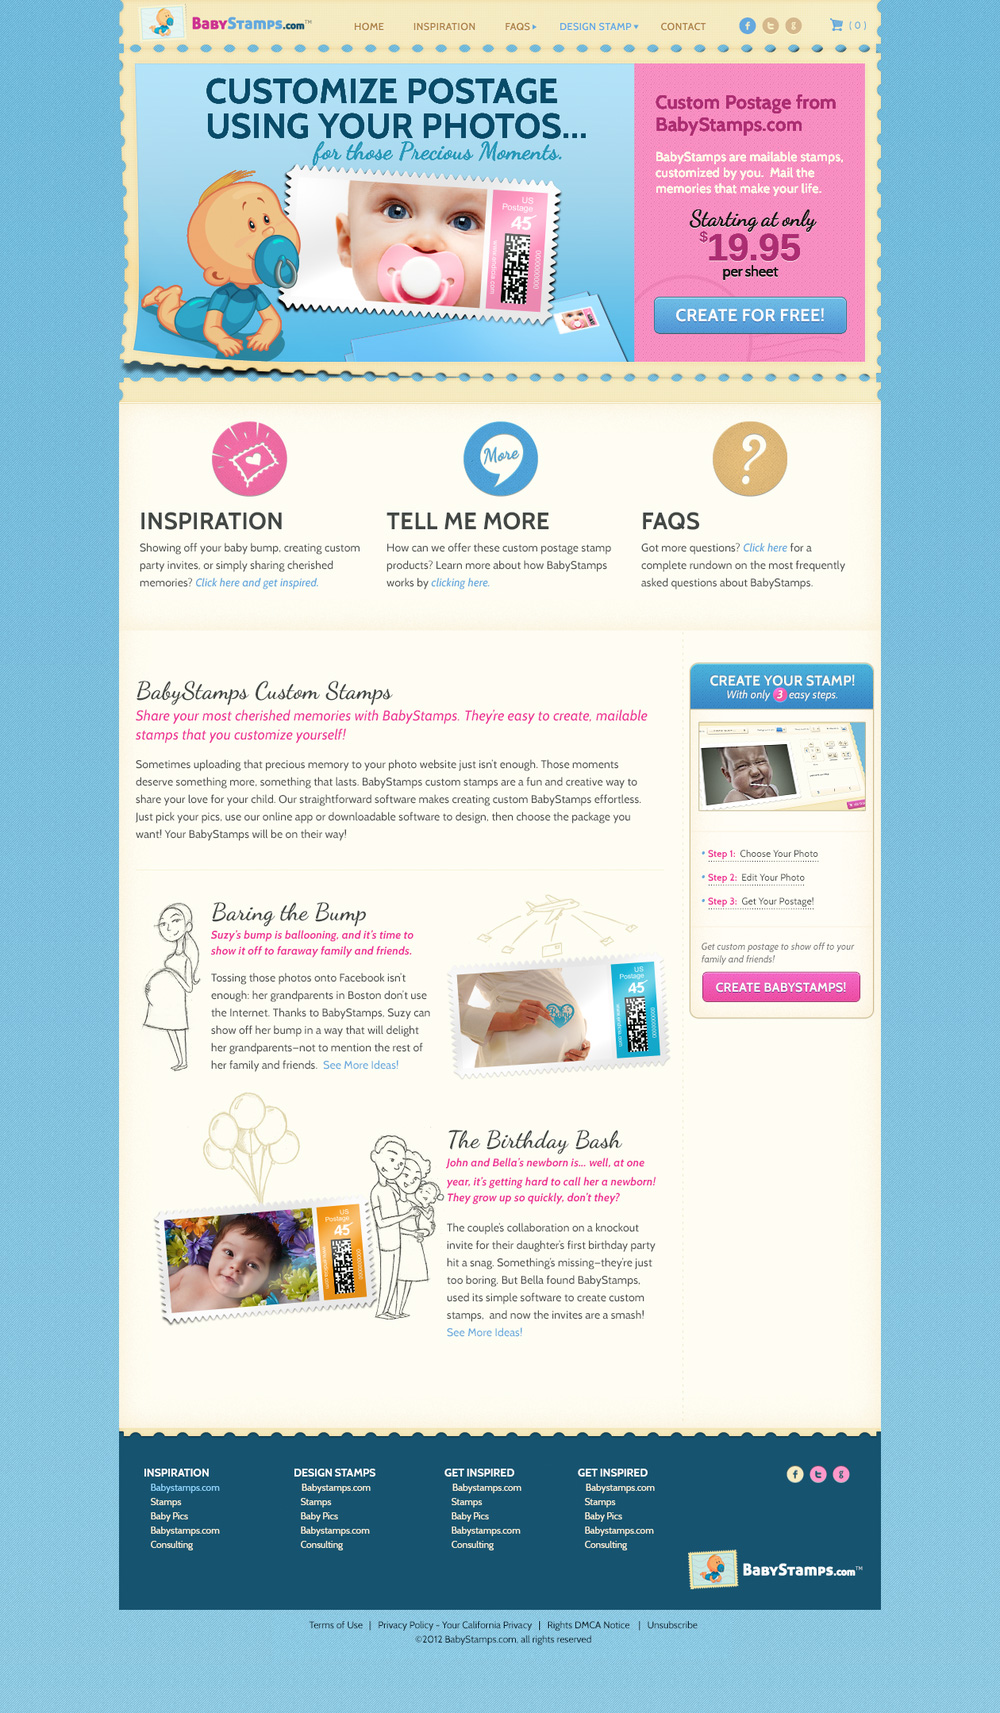 babystamps-homepage.png